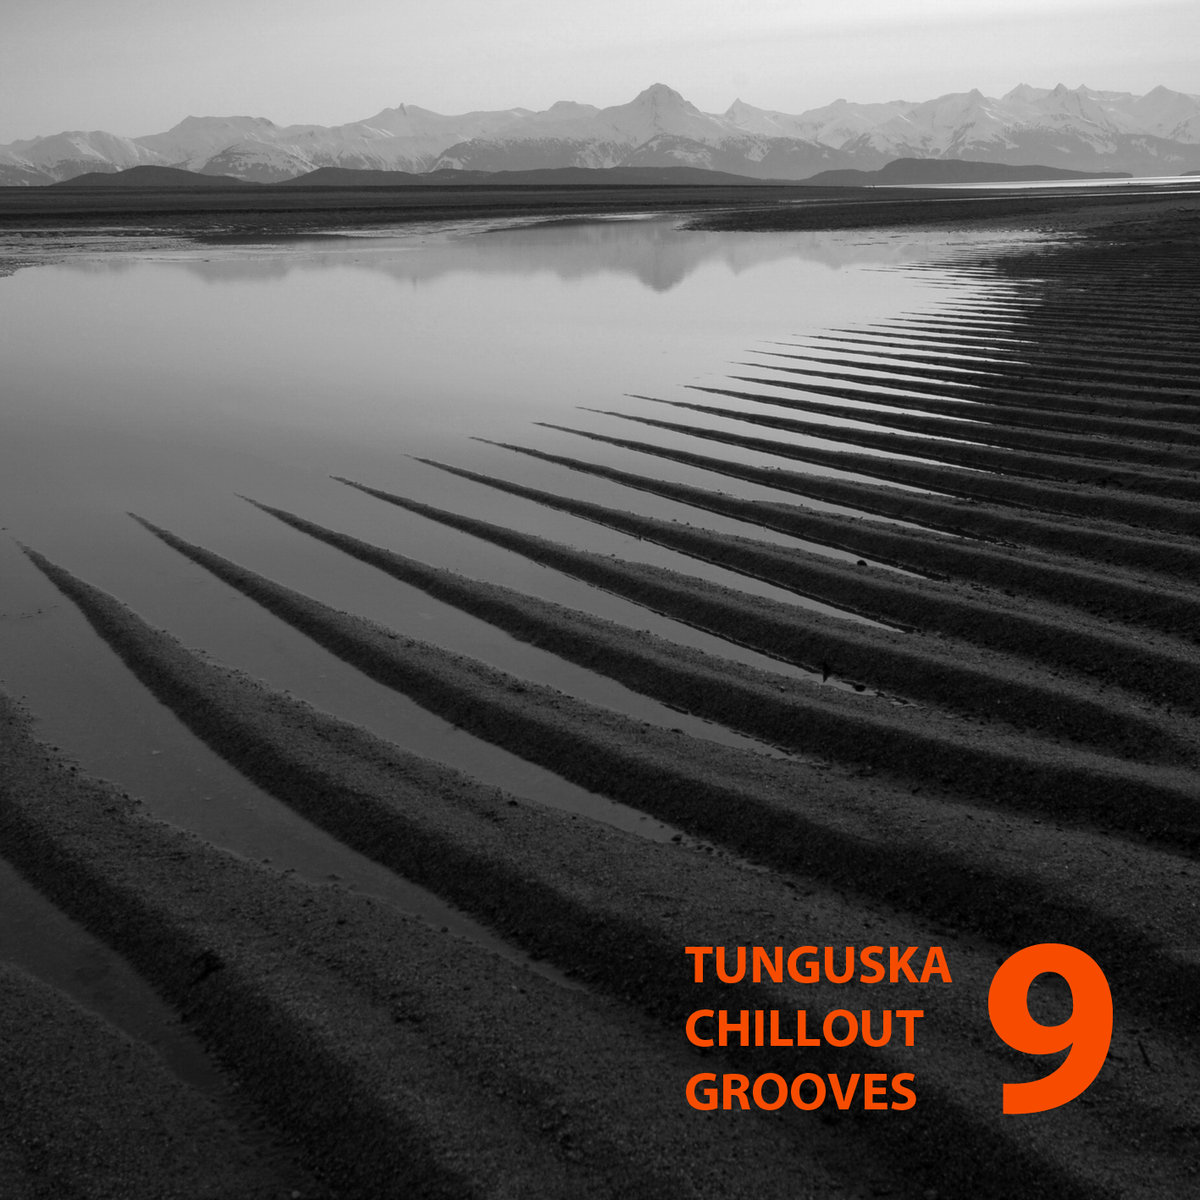 MaxiGroove - Give Me Your Love (Max Loginov Remix) @ 'Tunguska Chillout Grooves - Volume 9' album (electronic, ambient)